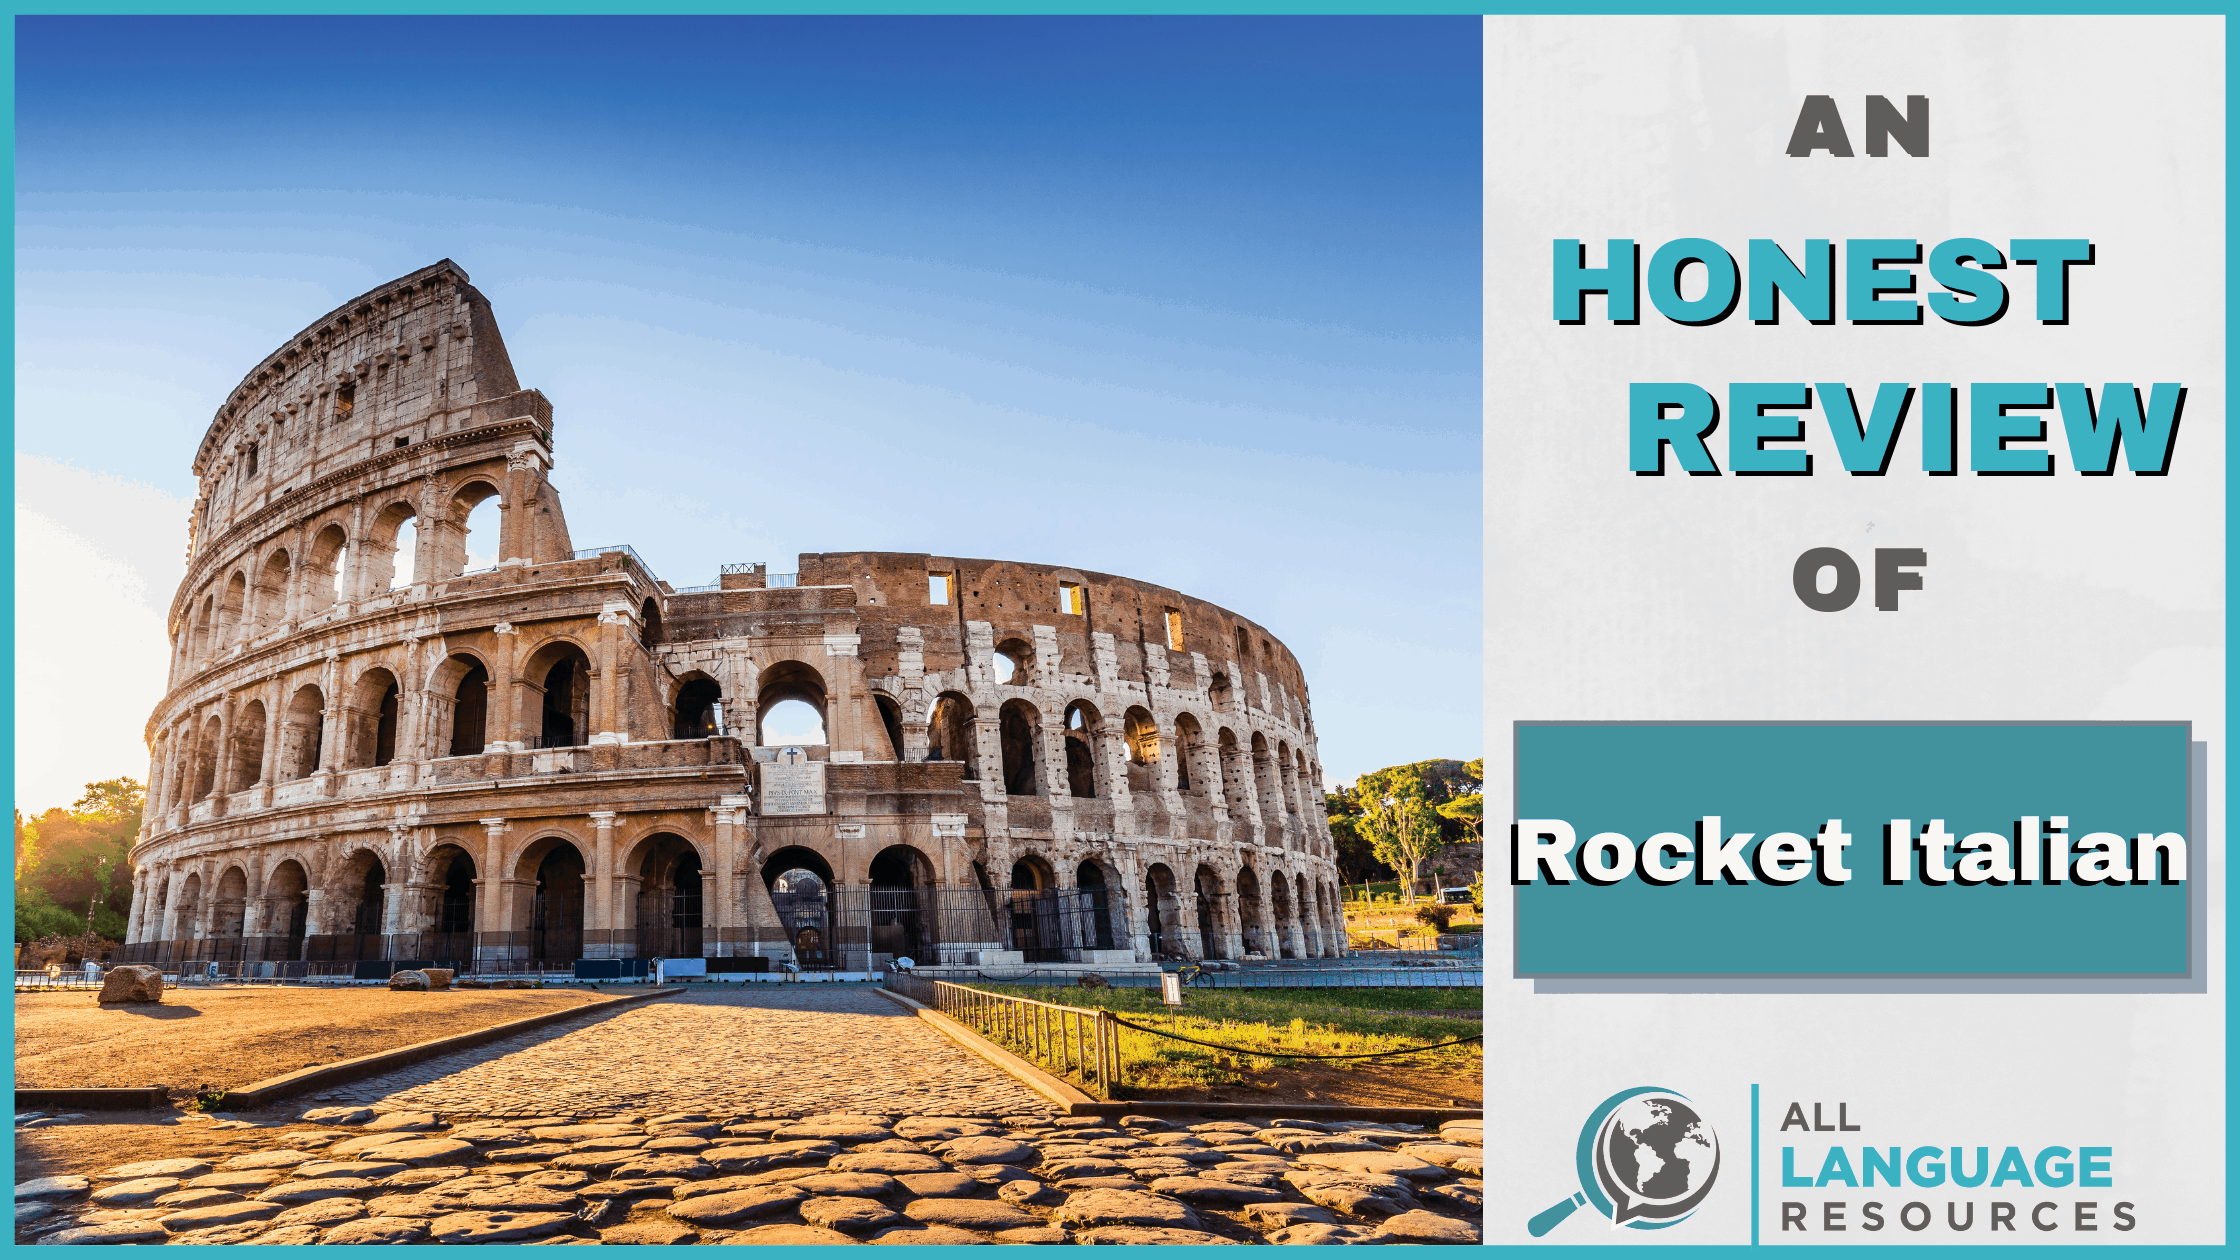 An Honest Review of Rocket Italian With Image of the Colosseum